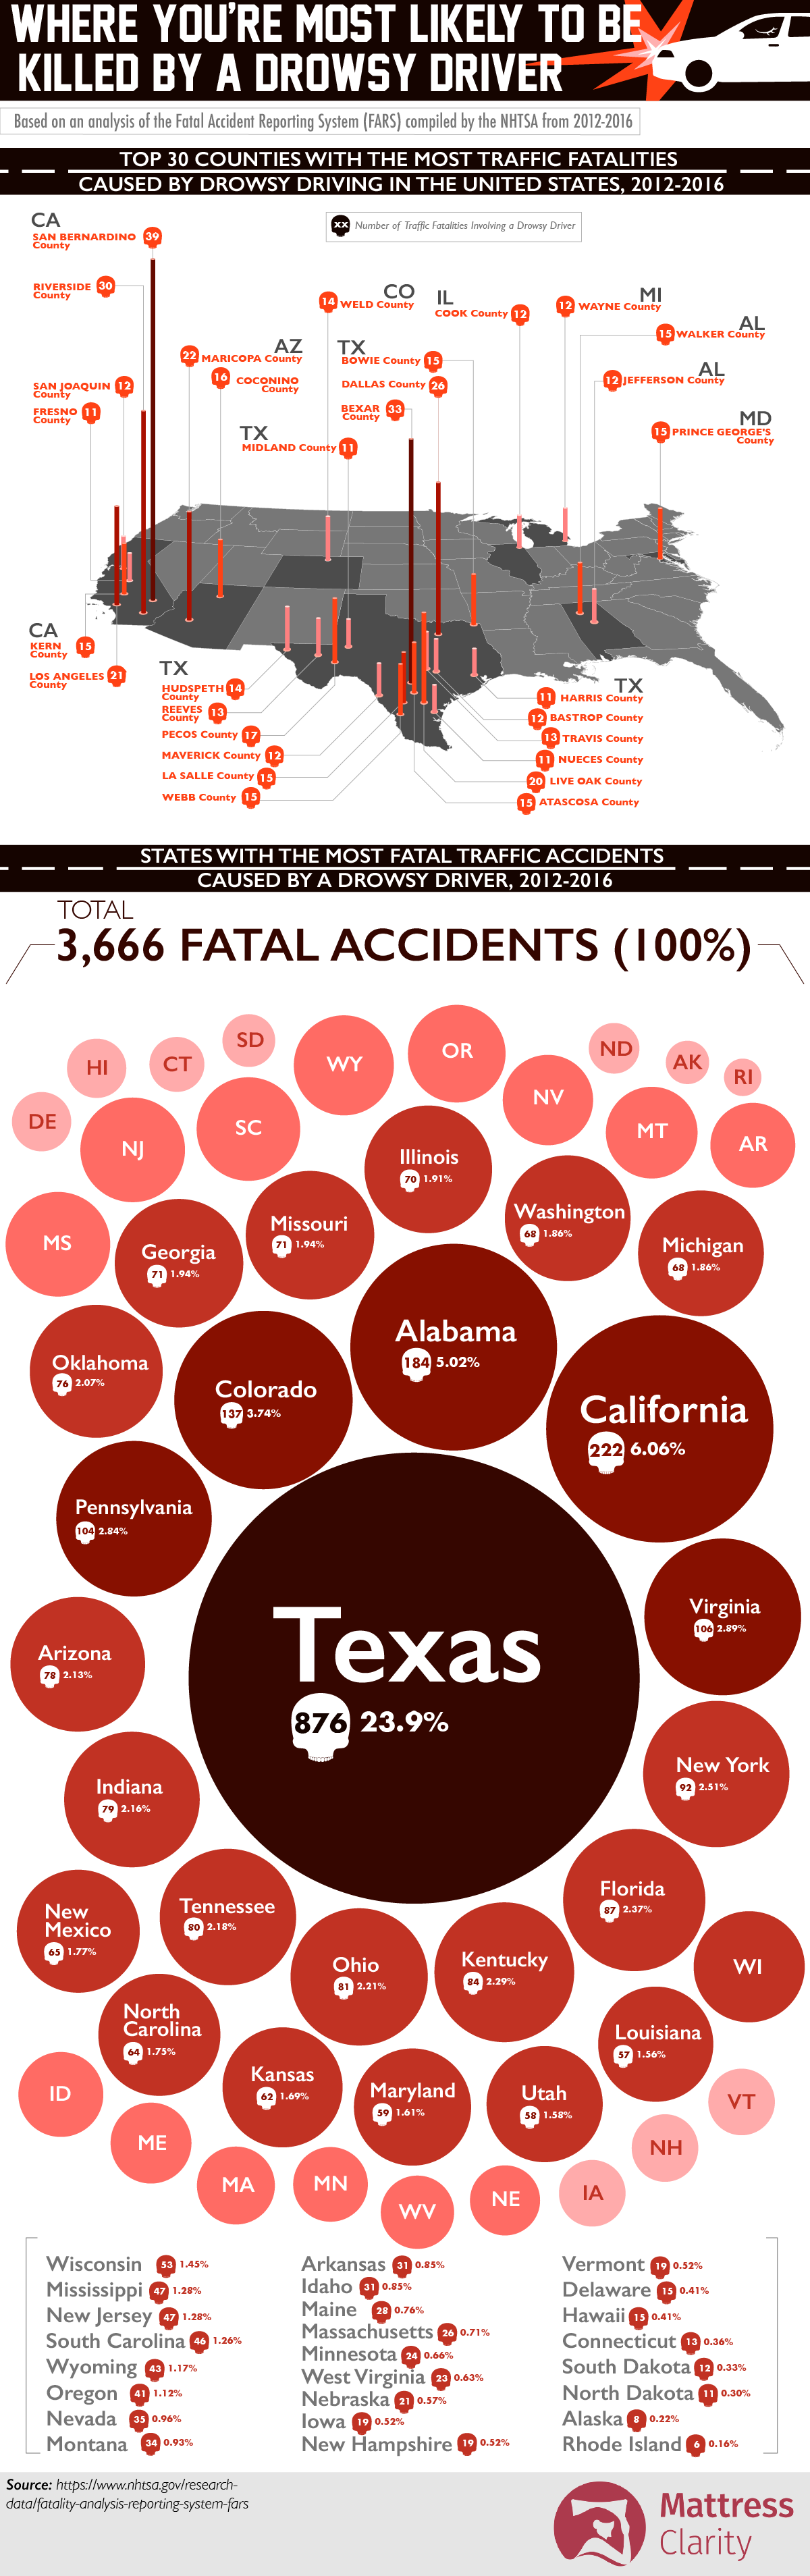 Where You're Most Likely to be Killed by a Drowsy Driver